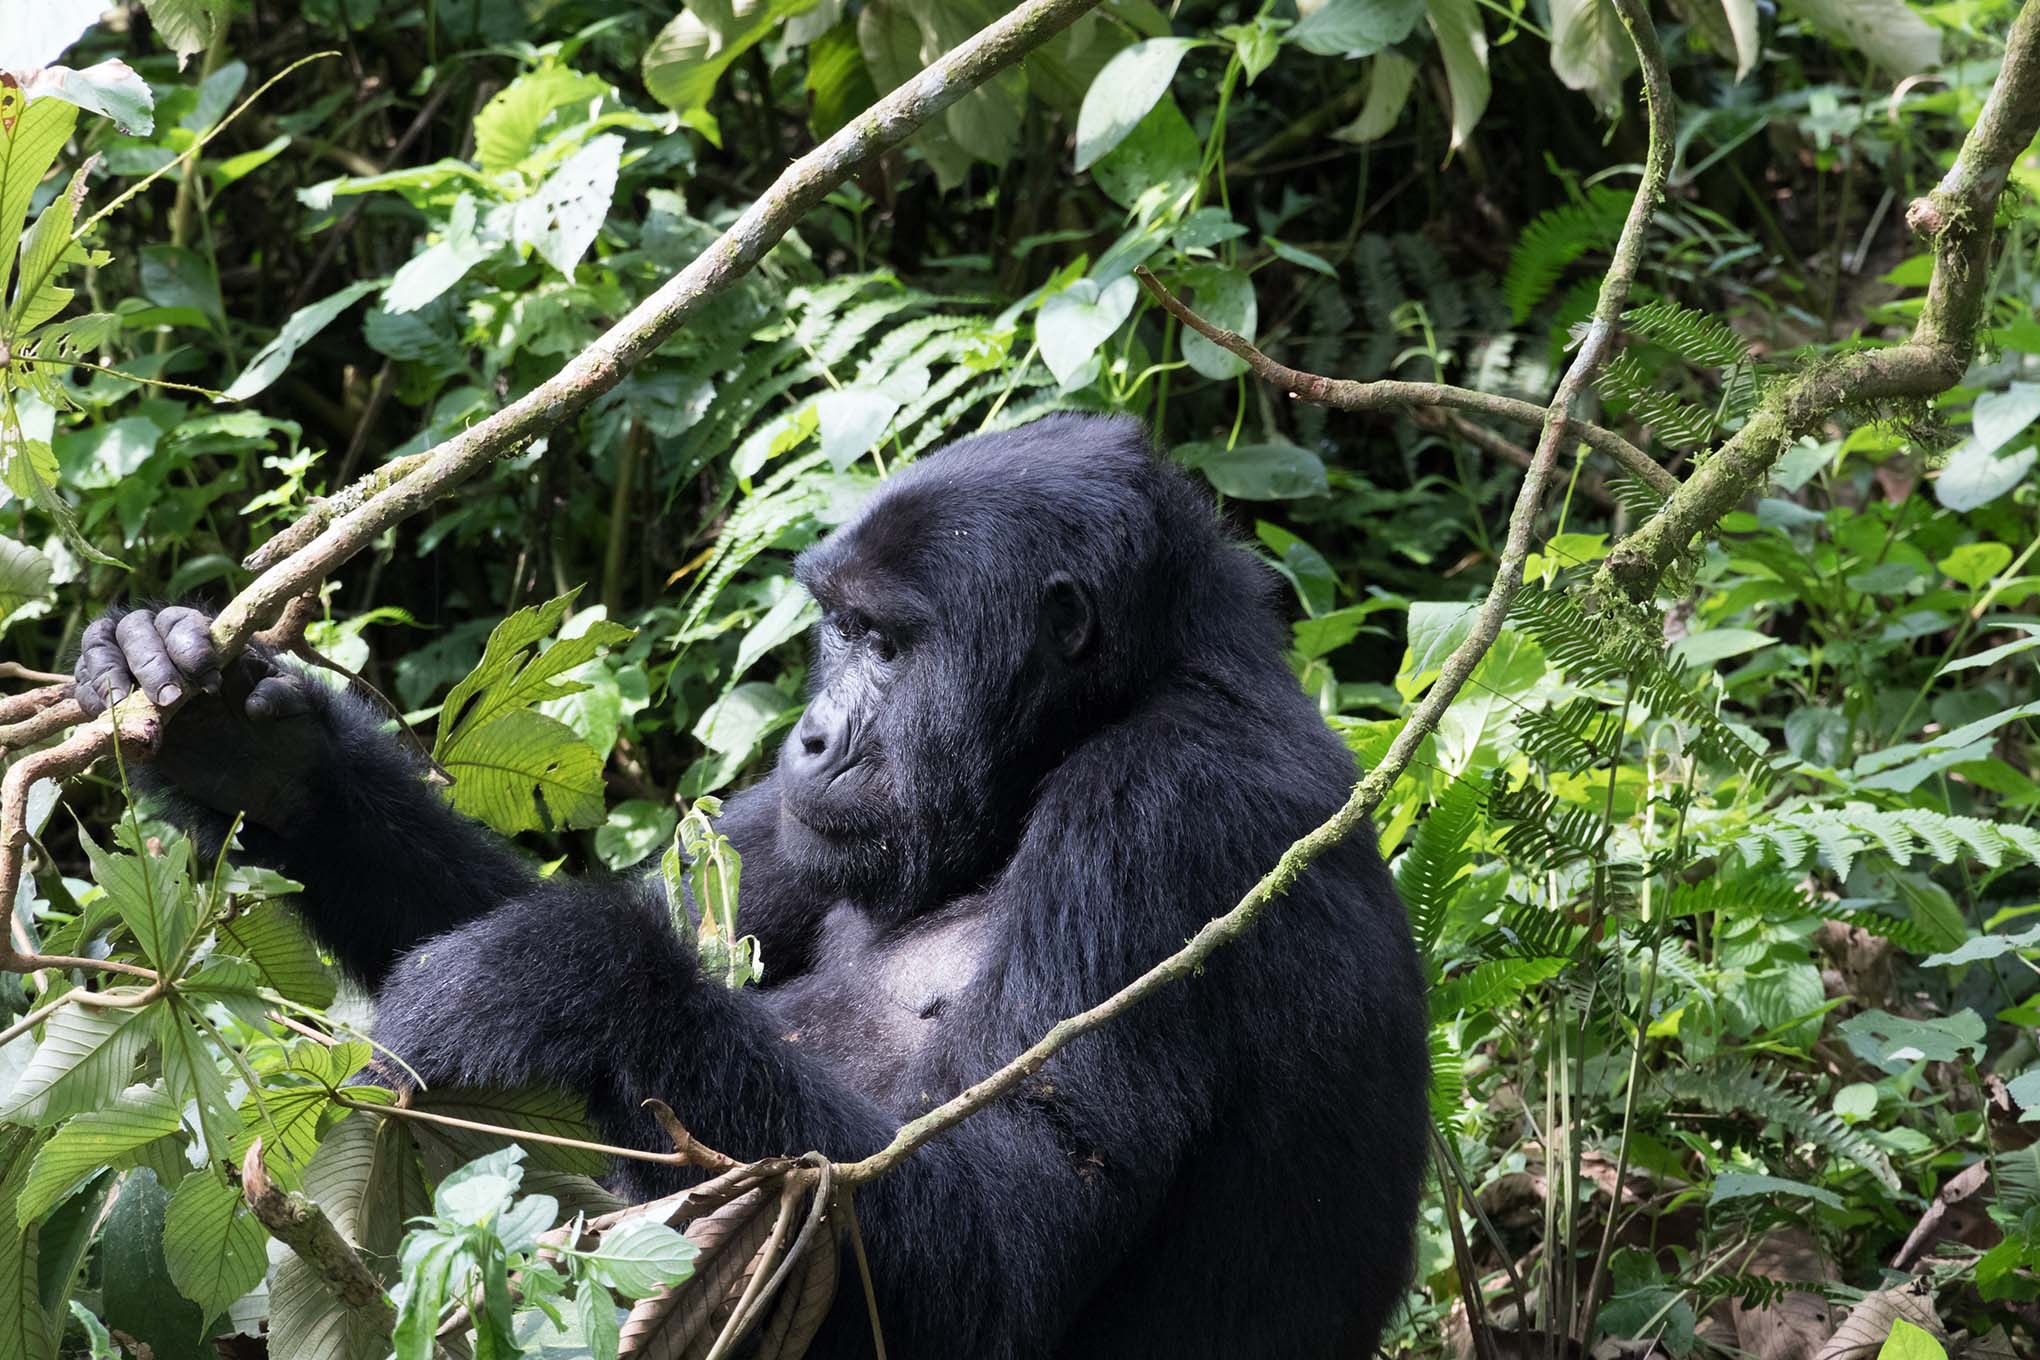 You can only find these beautiful mountain gorillas in two places in the entire world - Uganda is one of them!